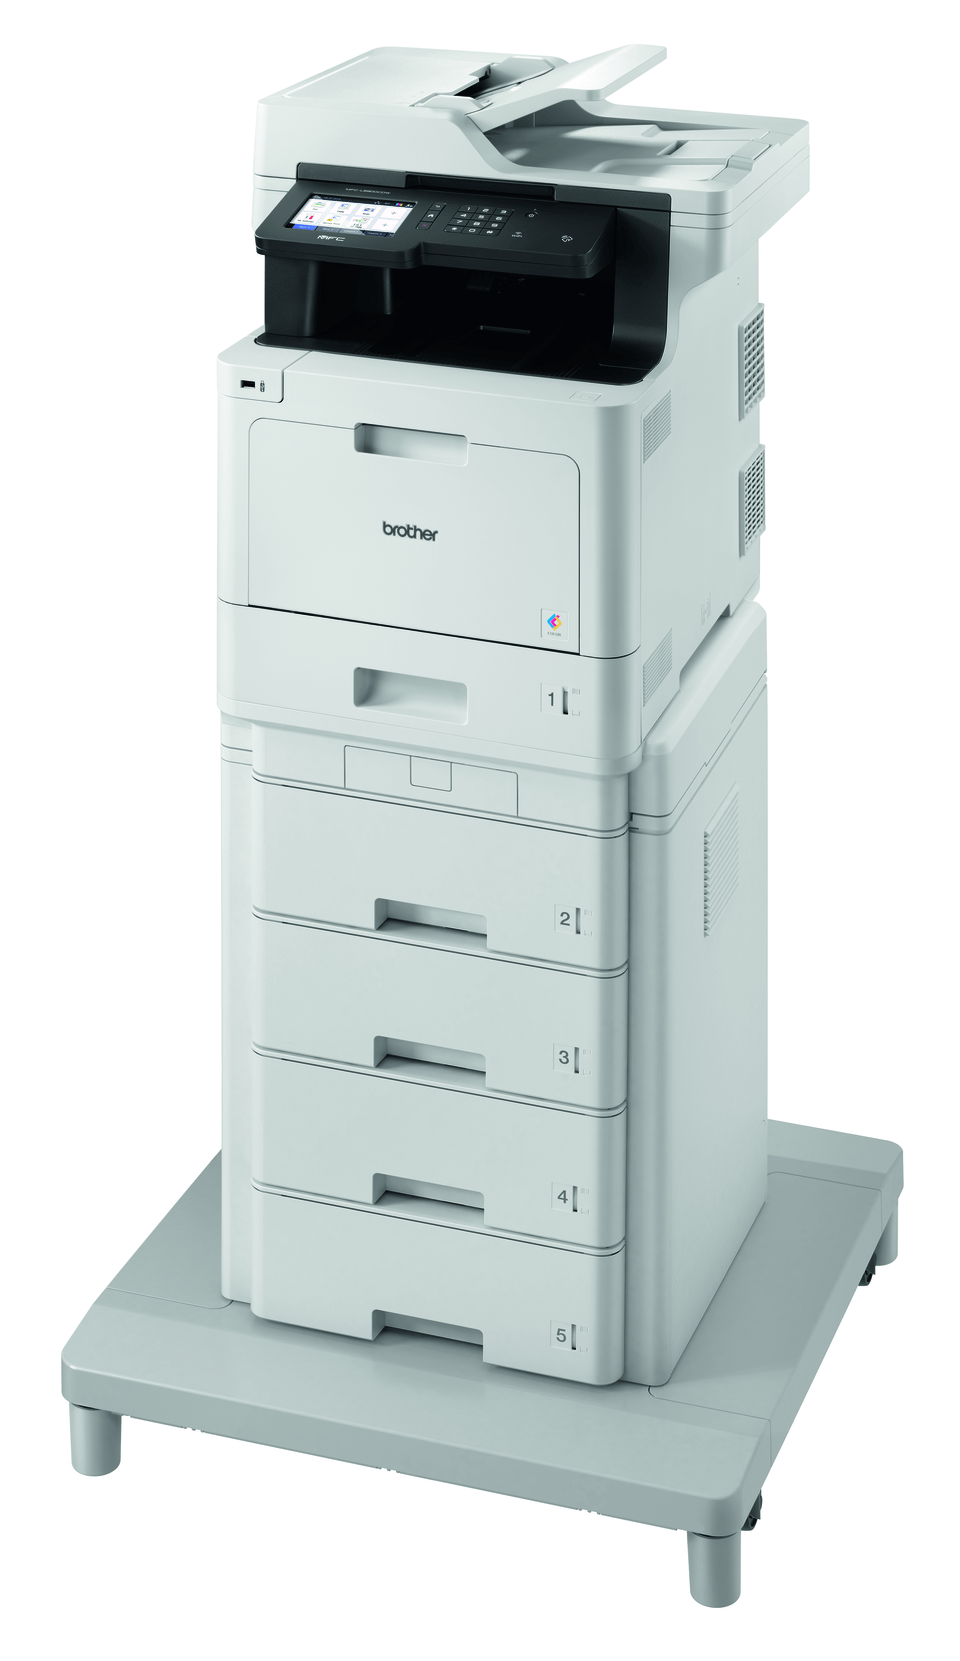 MFC-L8900CDWMT - Professional Colour Laser All-in-one Printer + Tower Tray + Tower Tray Connector 2